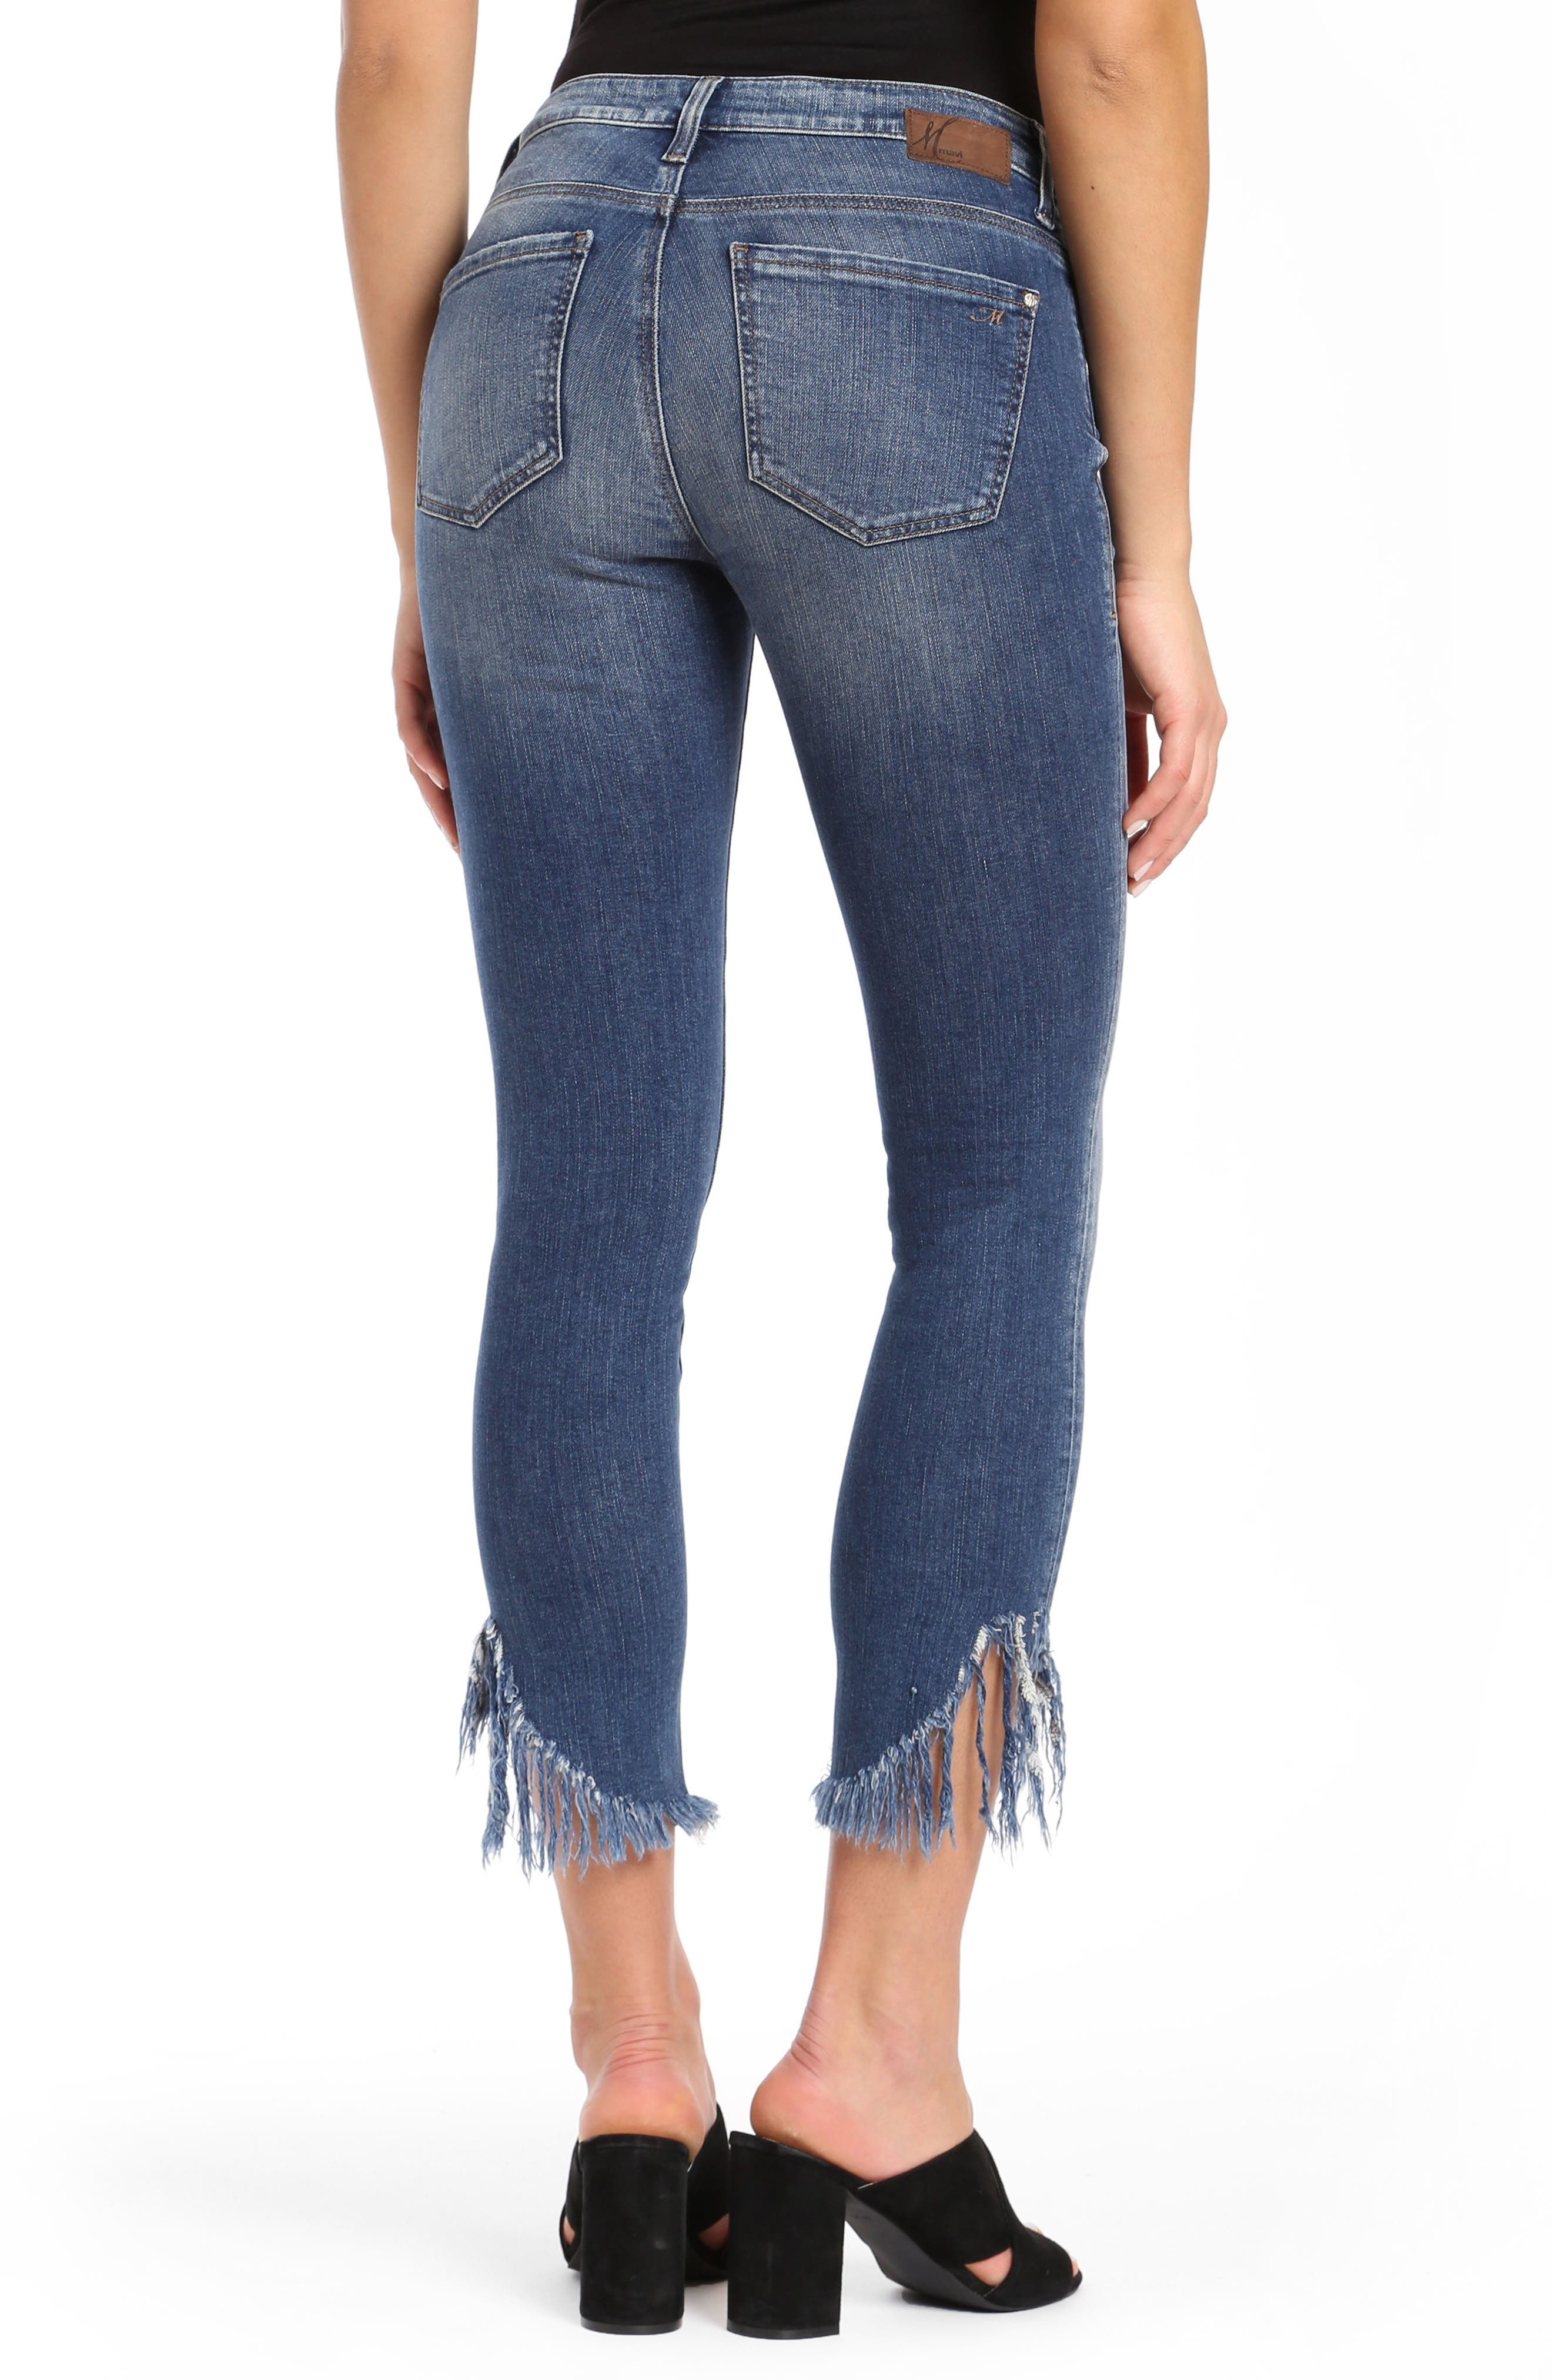 Tess Extreme Ripped Super Skinny Jeans,                             Alternate thumbnail 2, color,                             Extreme Ripped Vintage